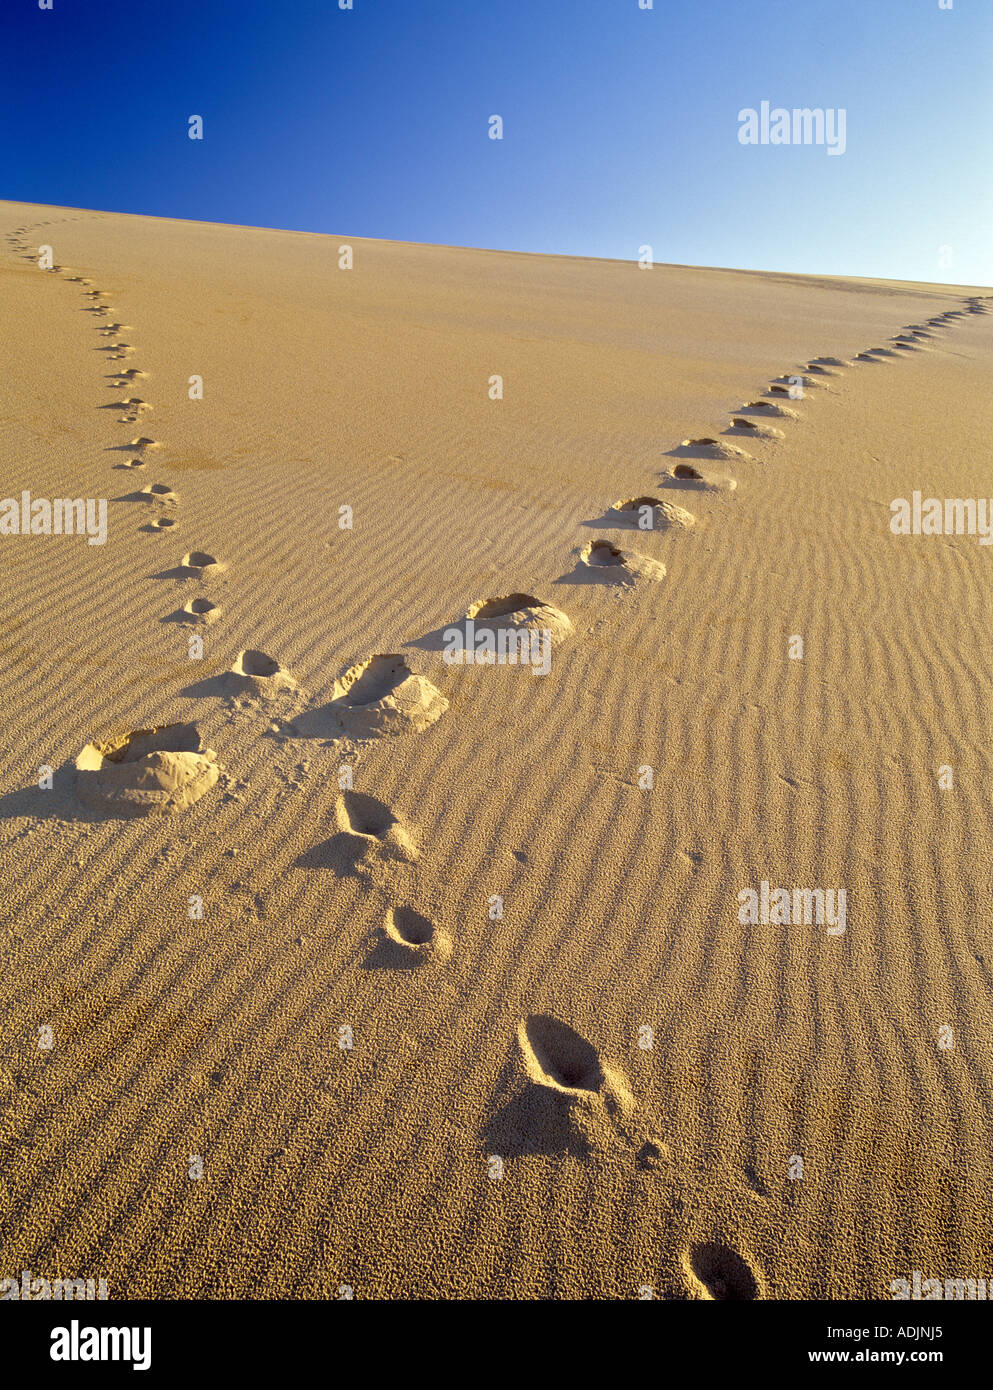 Footprints up sand dune Oregon Dunes National Recreational Area - Stock Image